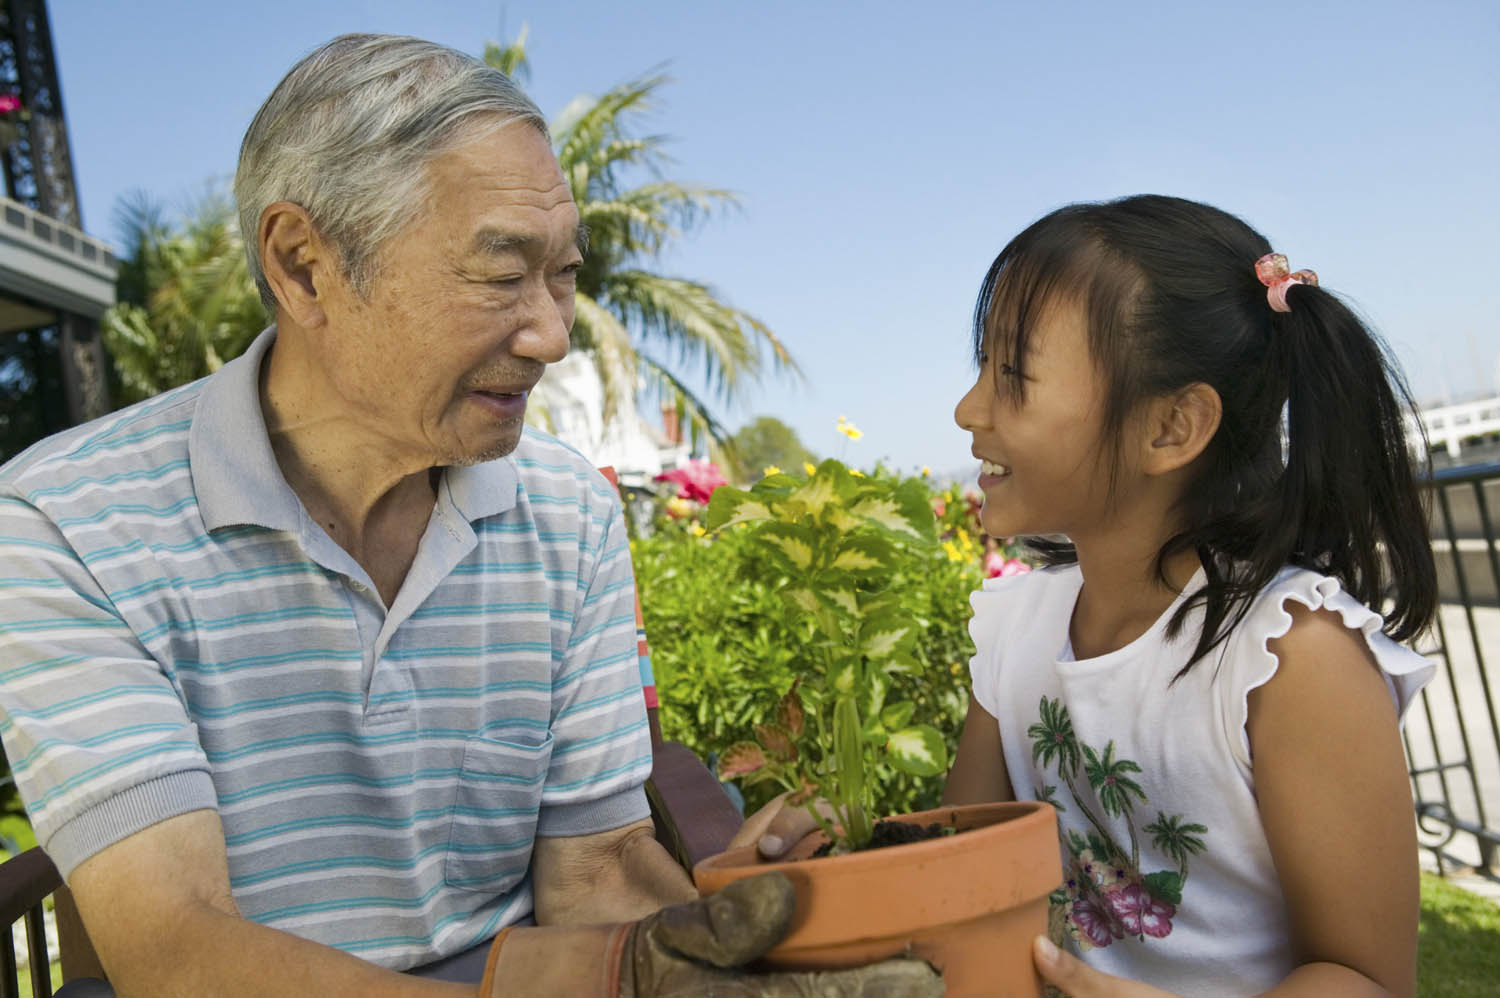 Aging in place, Children and Nature